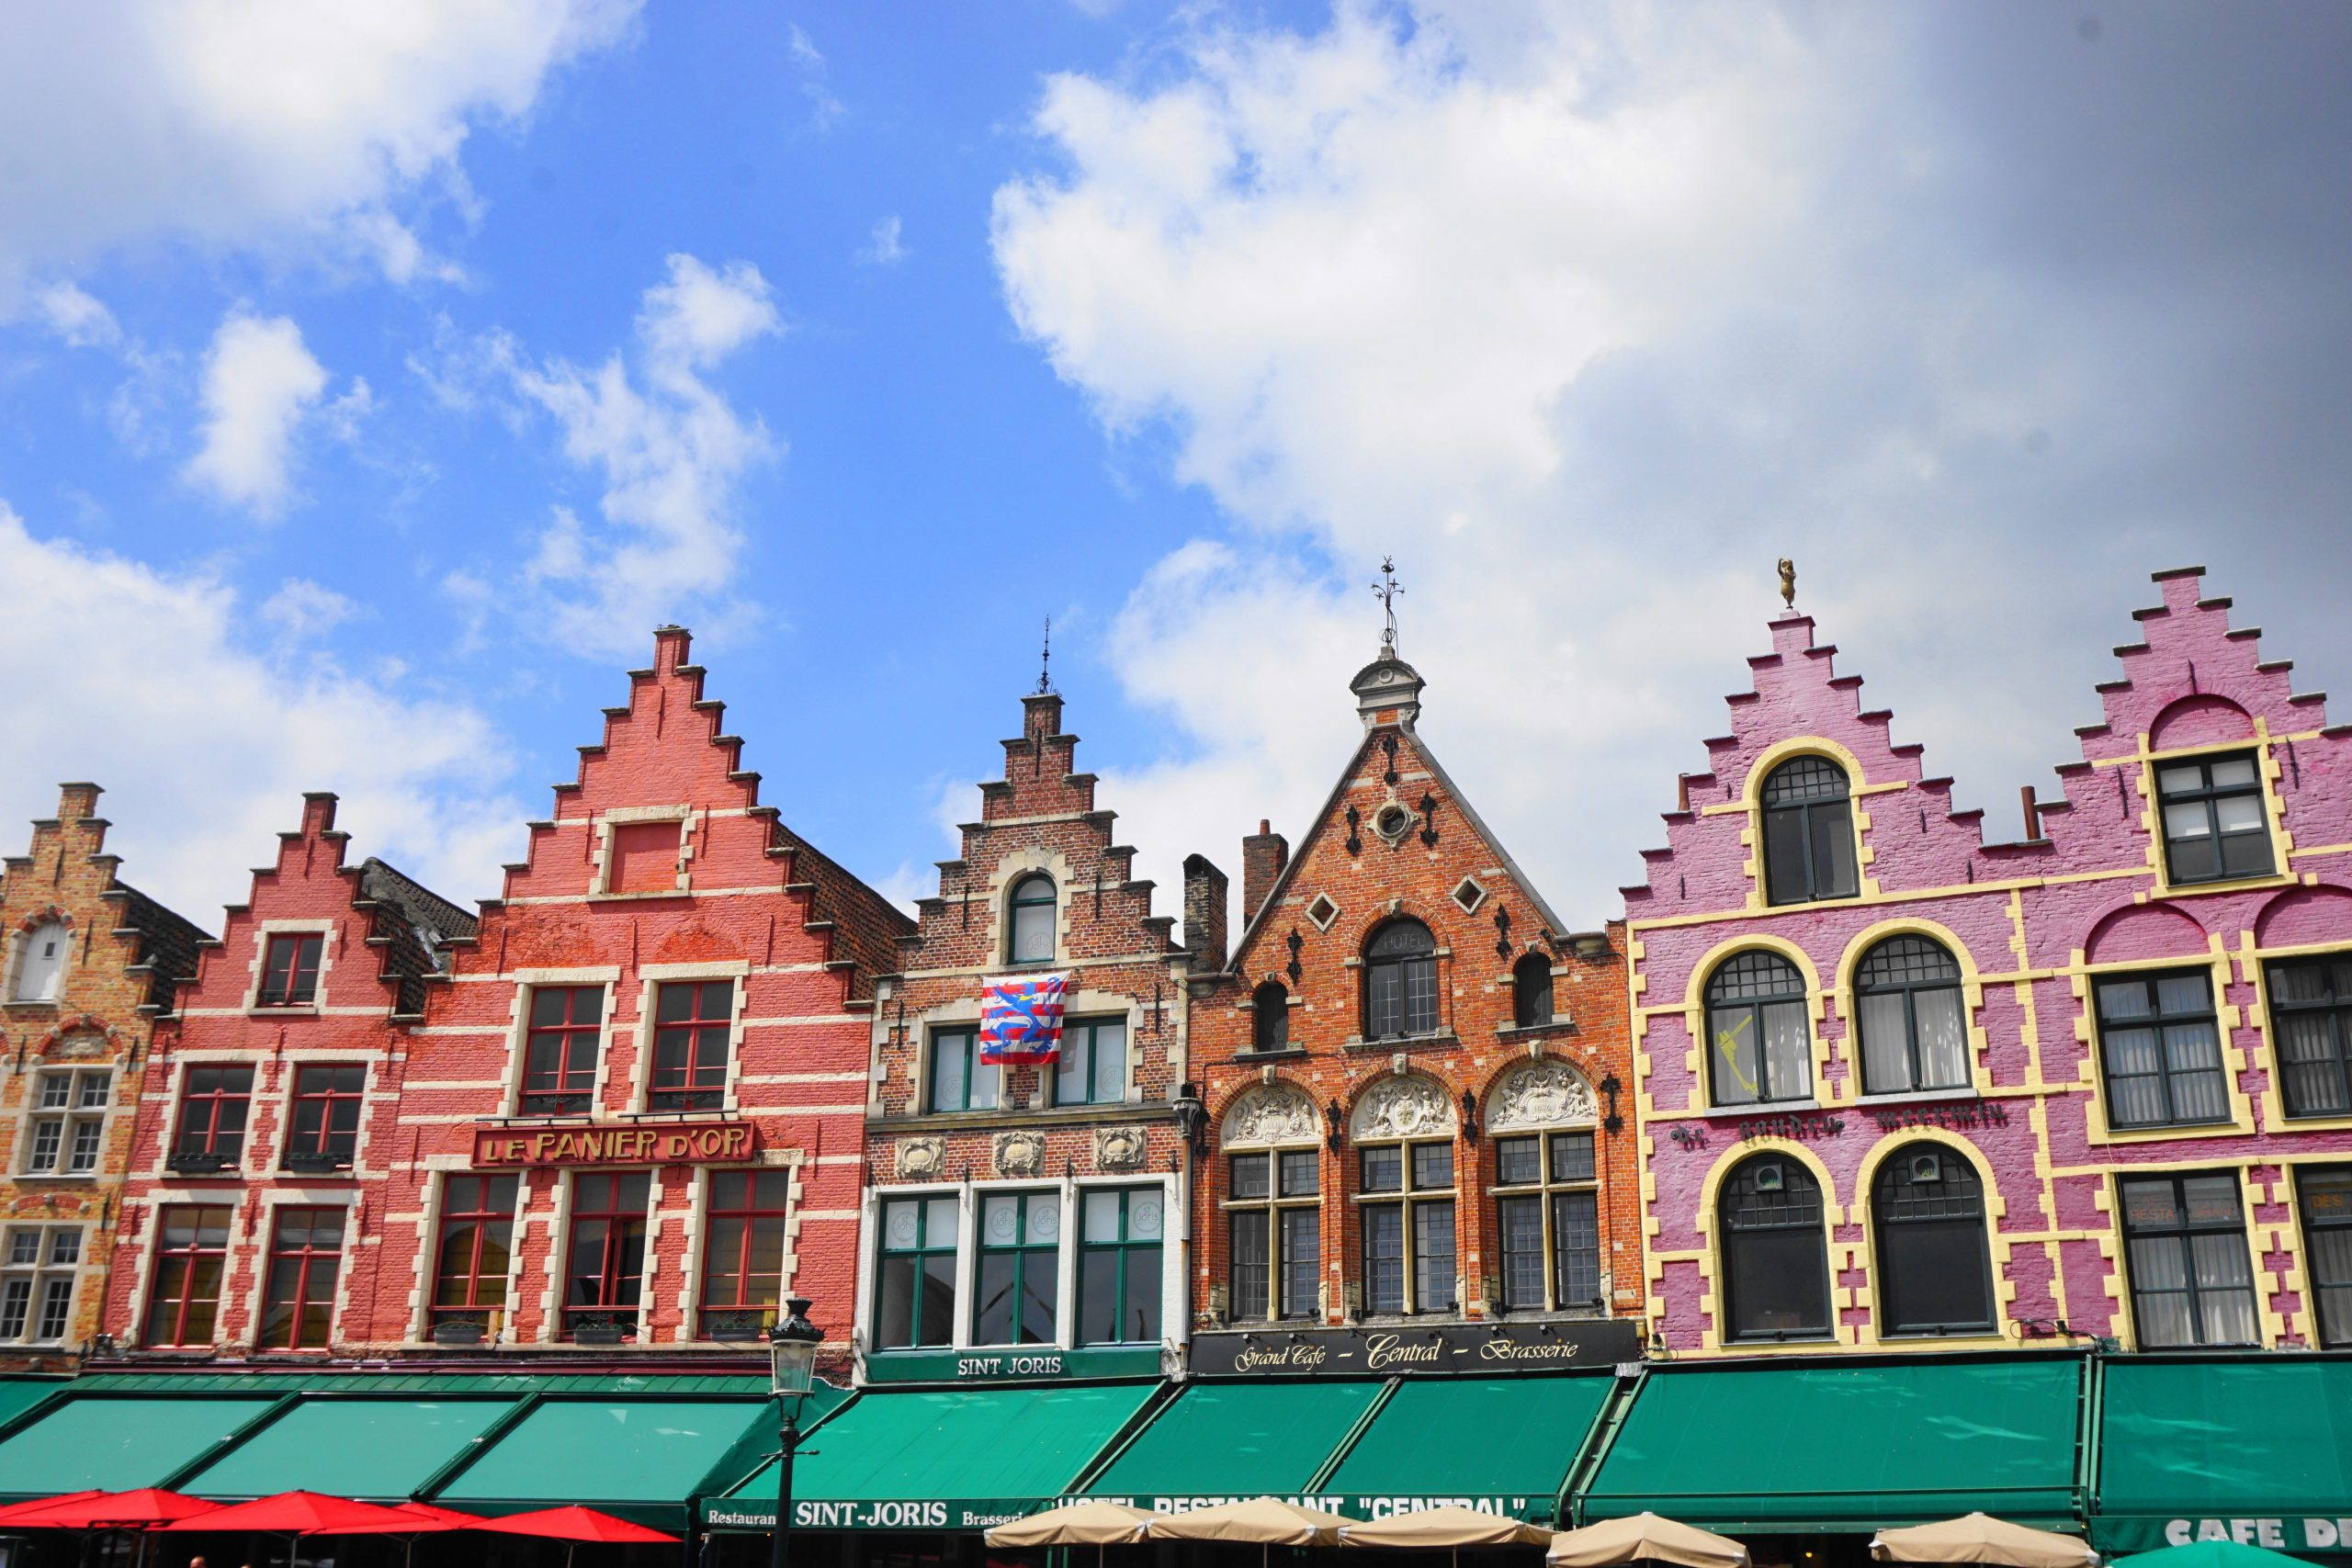 Explore 8 unique things to do in Bruges, Belgium! From hot air ballooning to biking to beer tasting, make sure you add these activities to your bucket list!